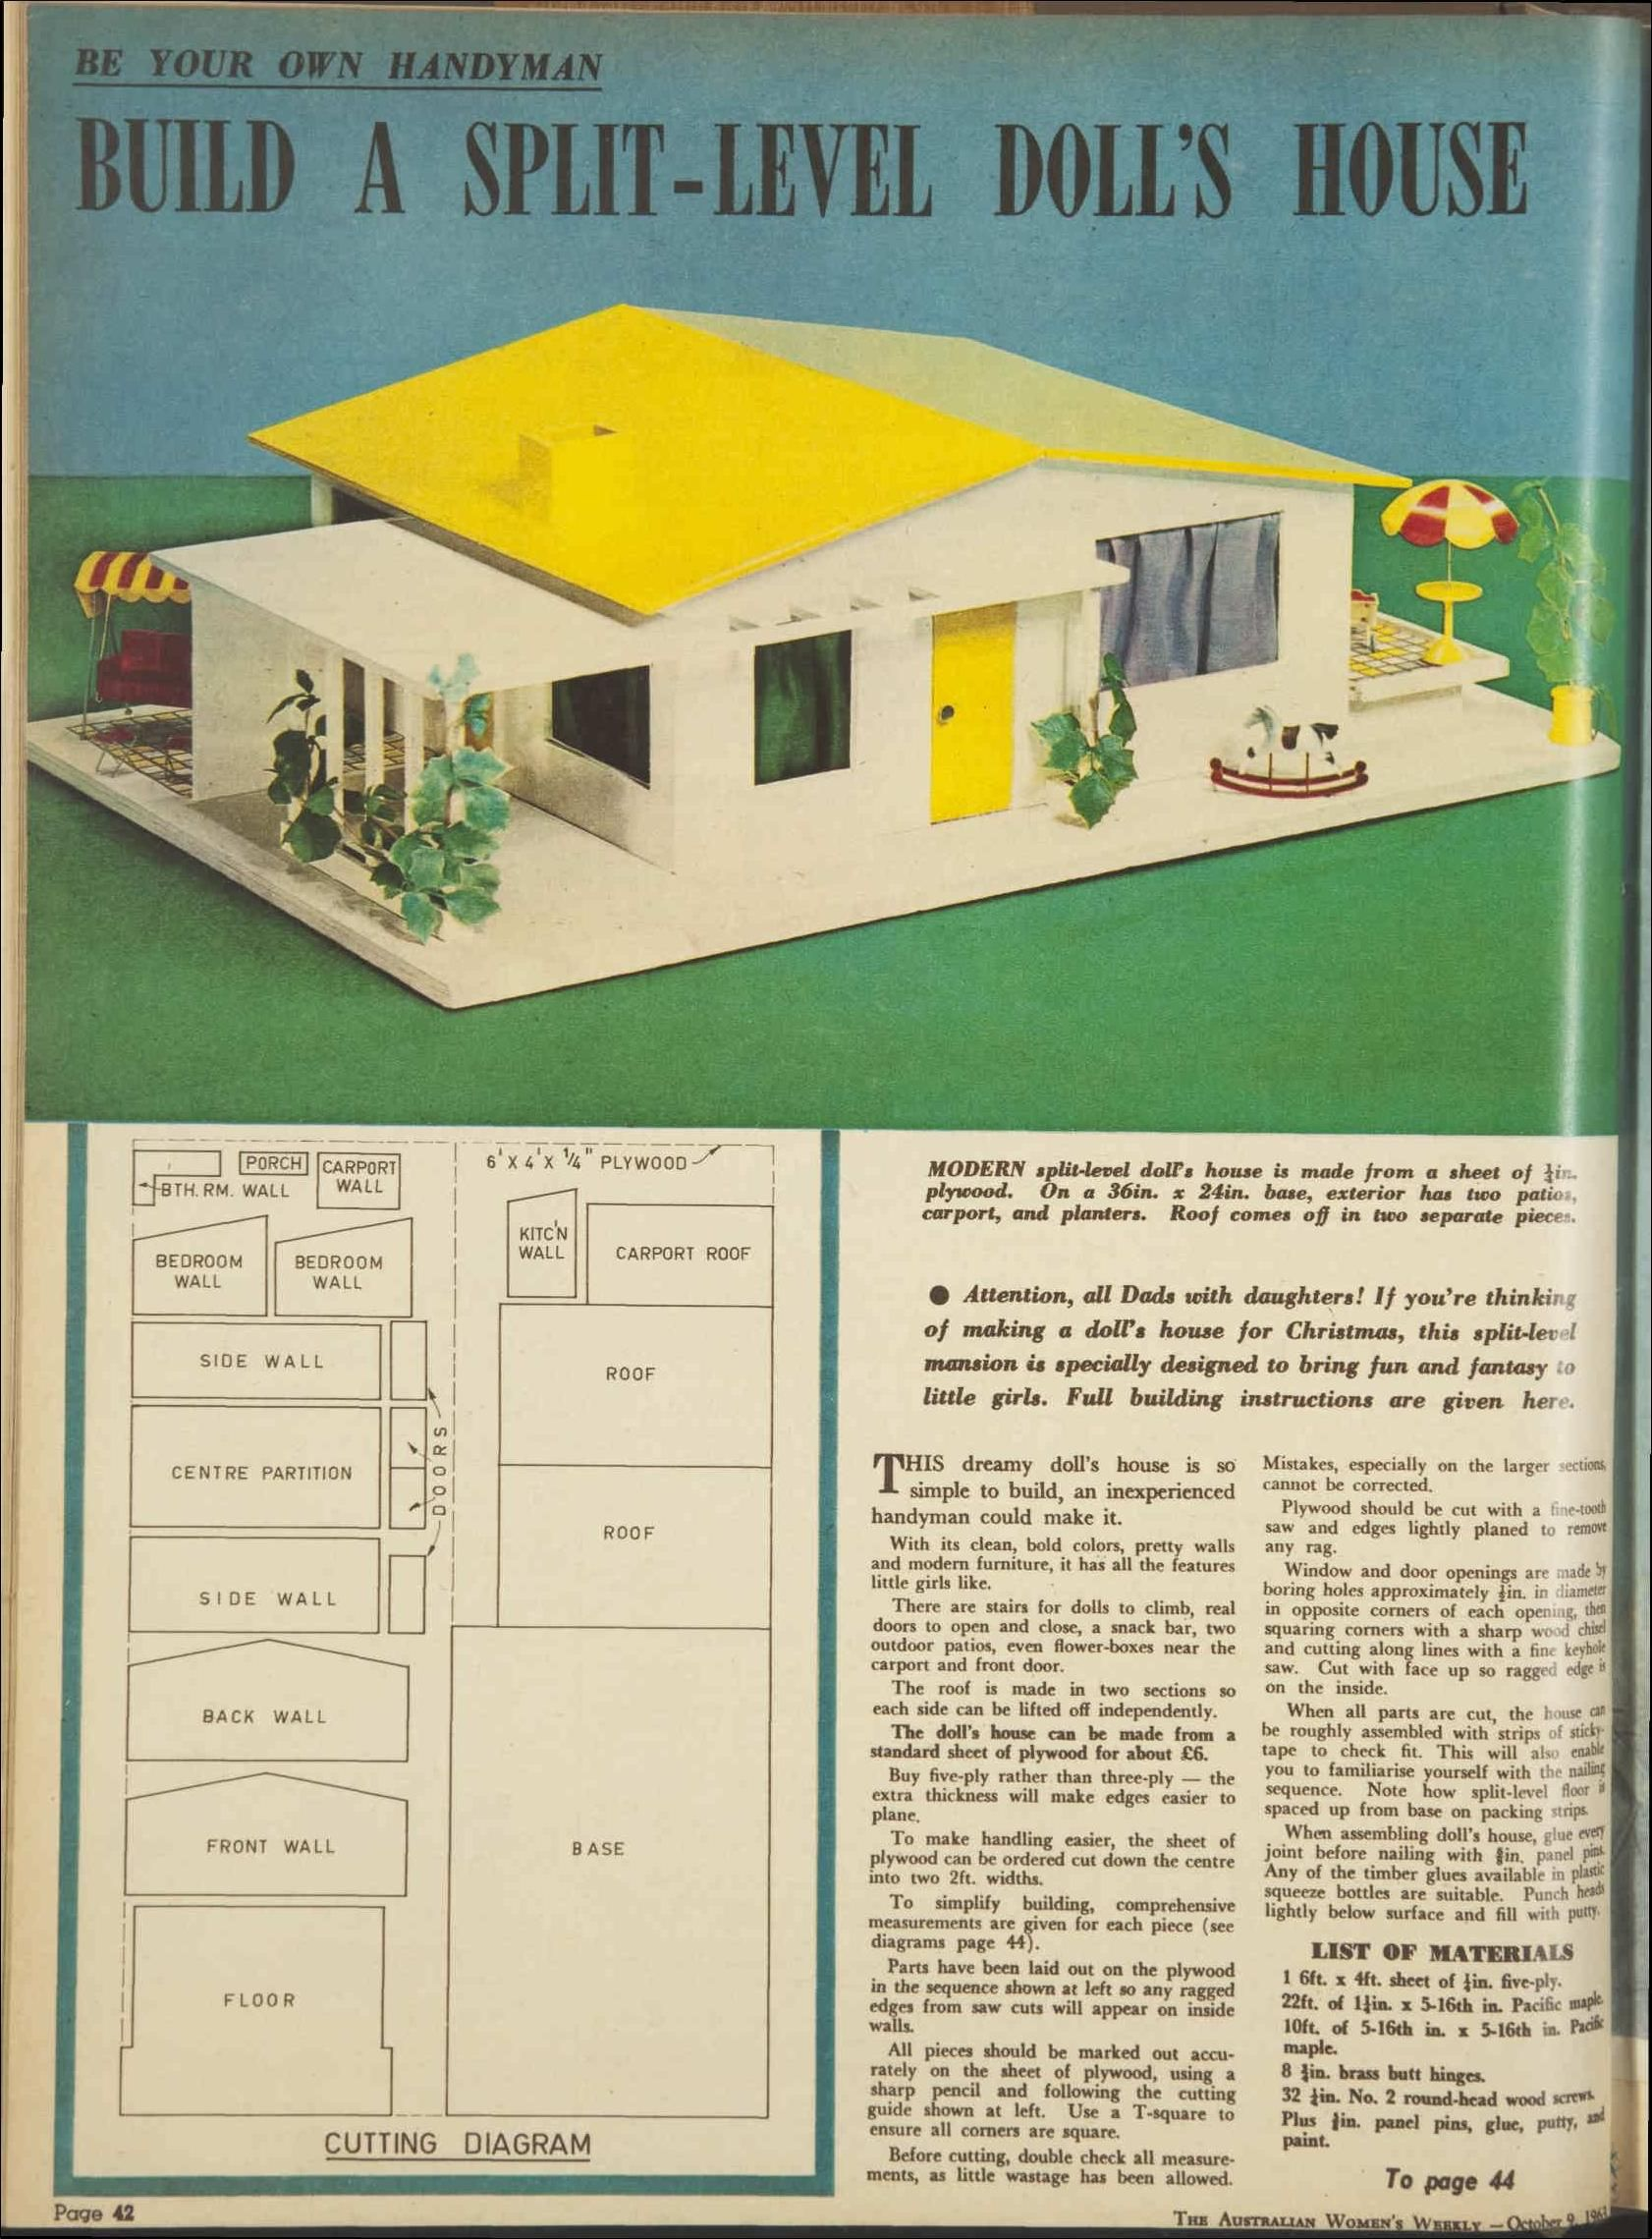 Plans for a splitlevel 1960s doll's house 9 Oct 1963